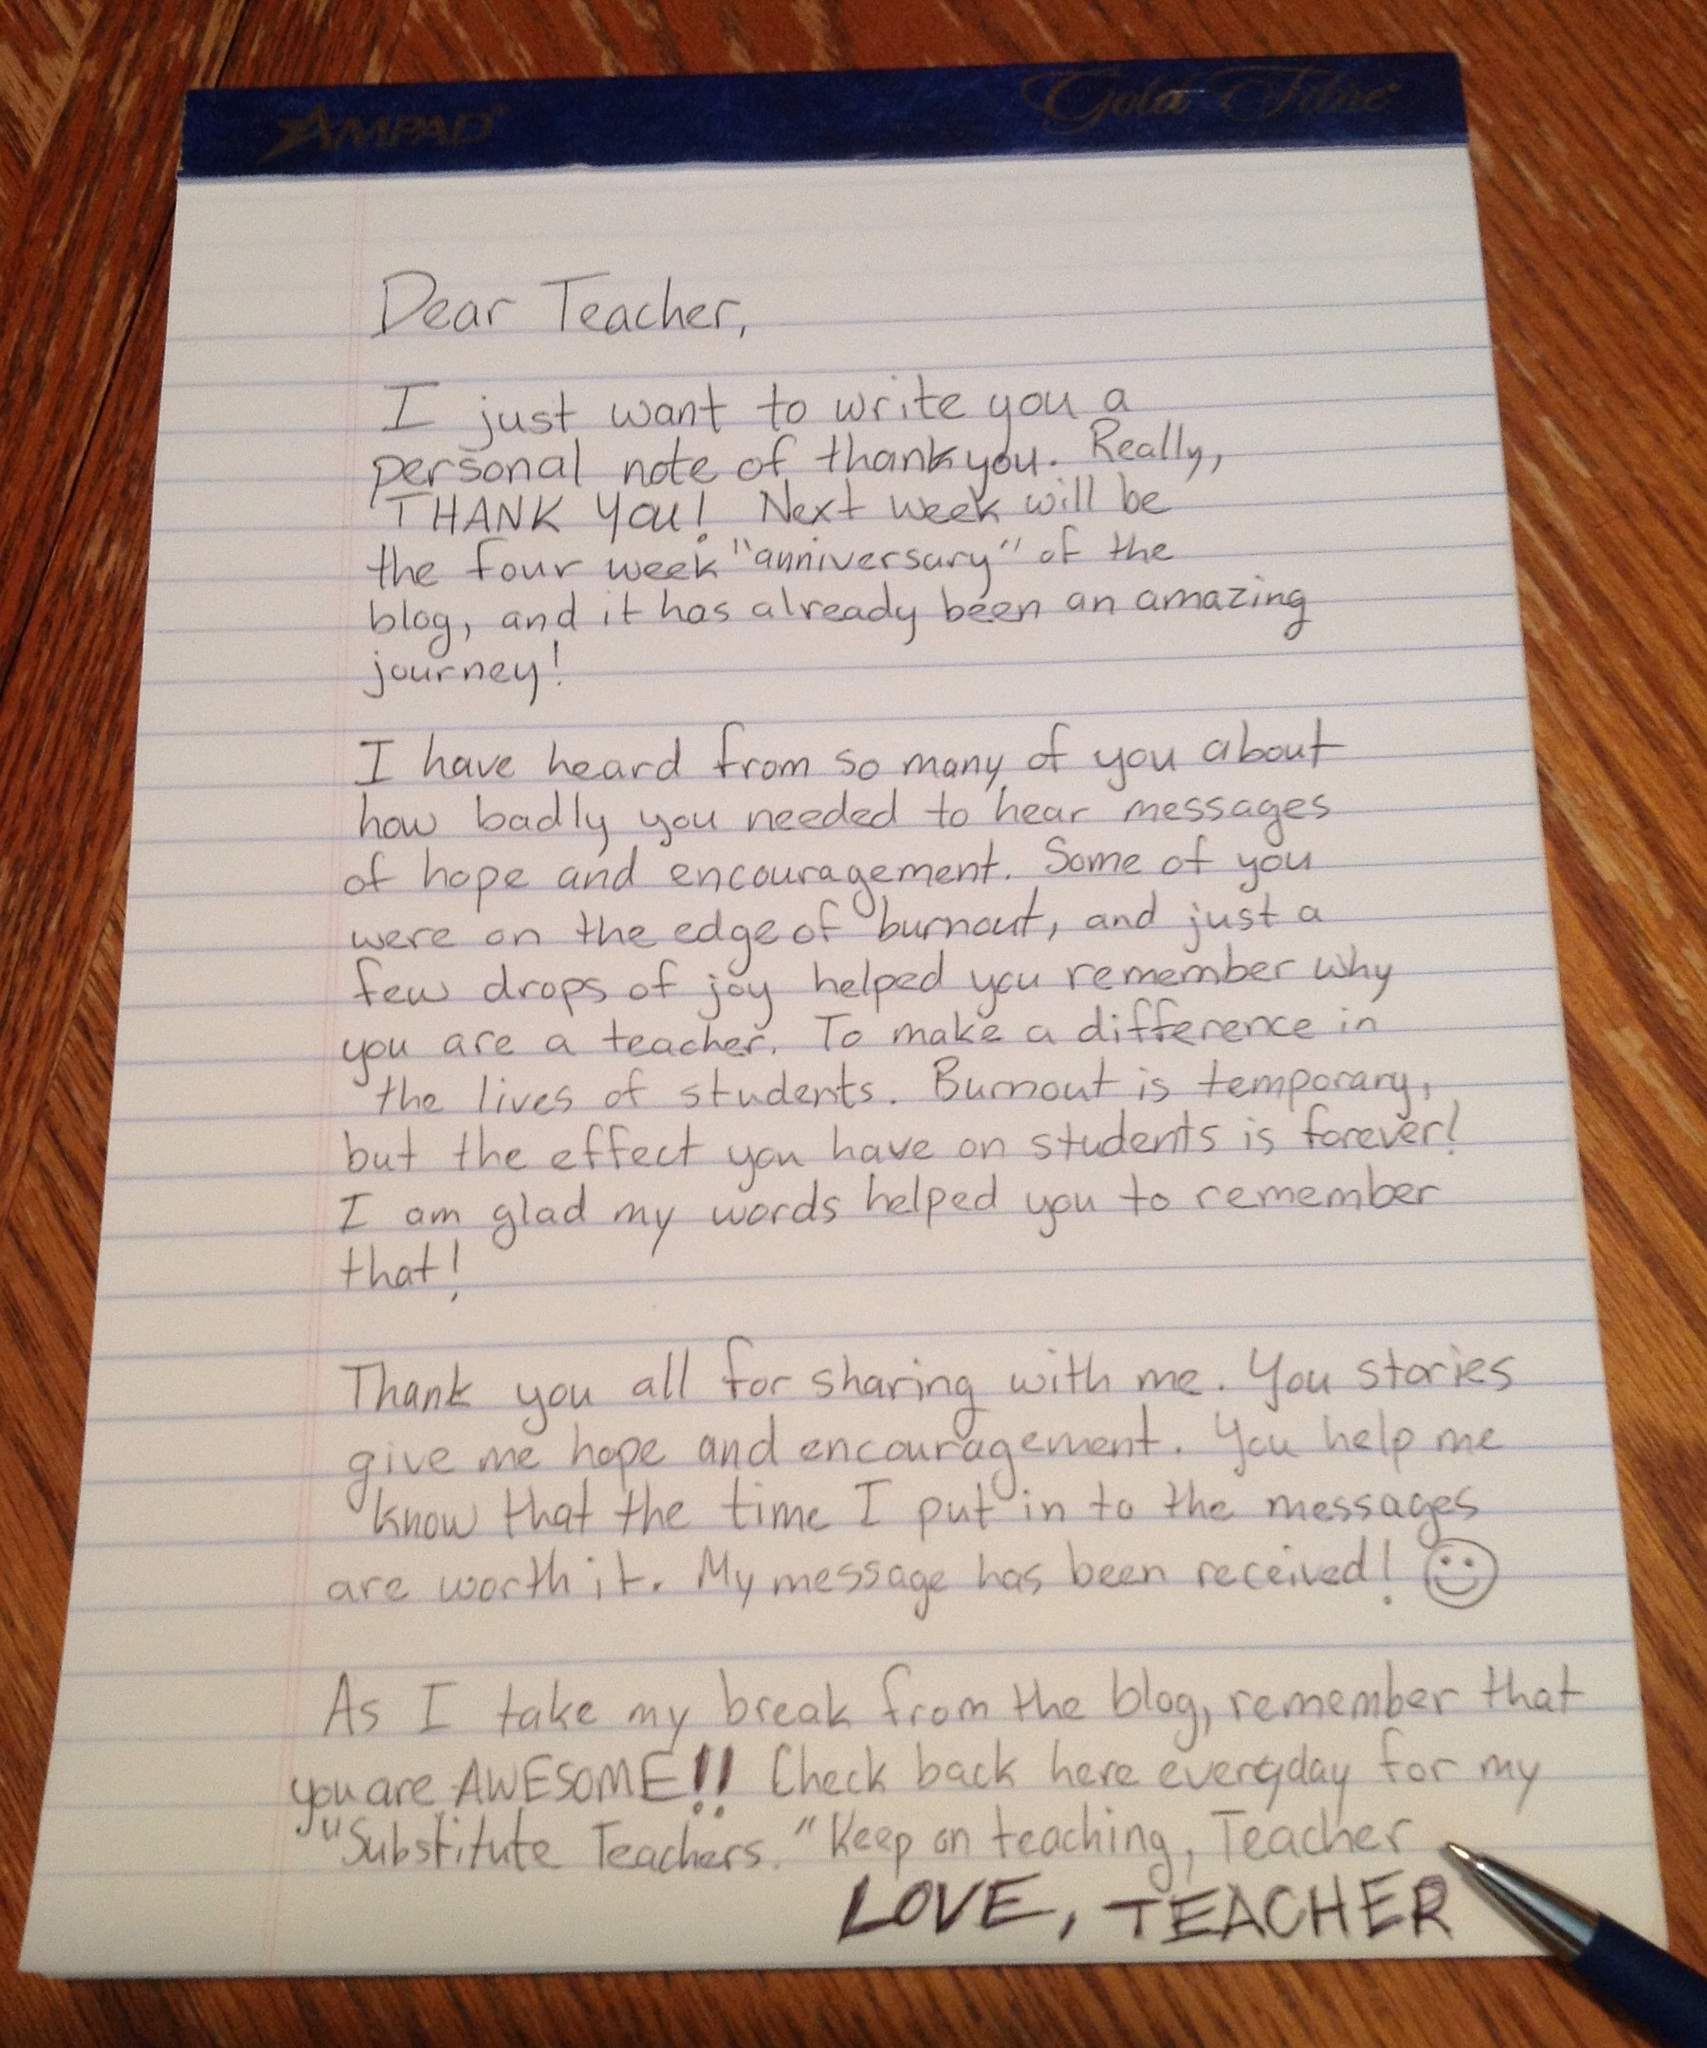 handwritten note dear teacher love teacher c dearteacherlt2013 you use this picture of you link back to this